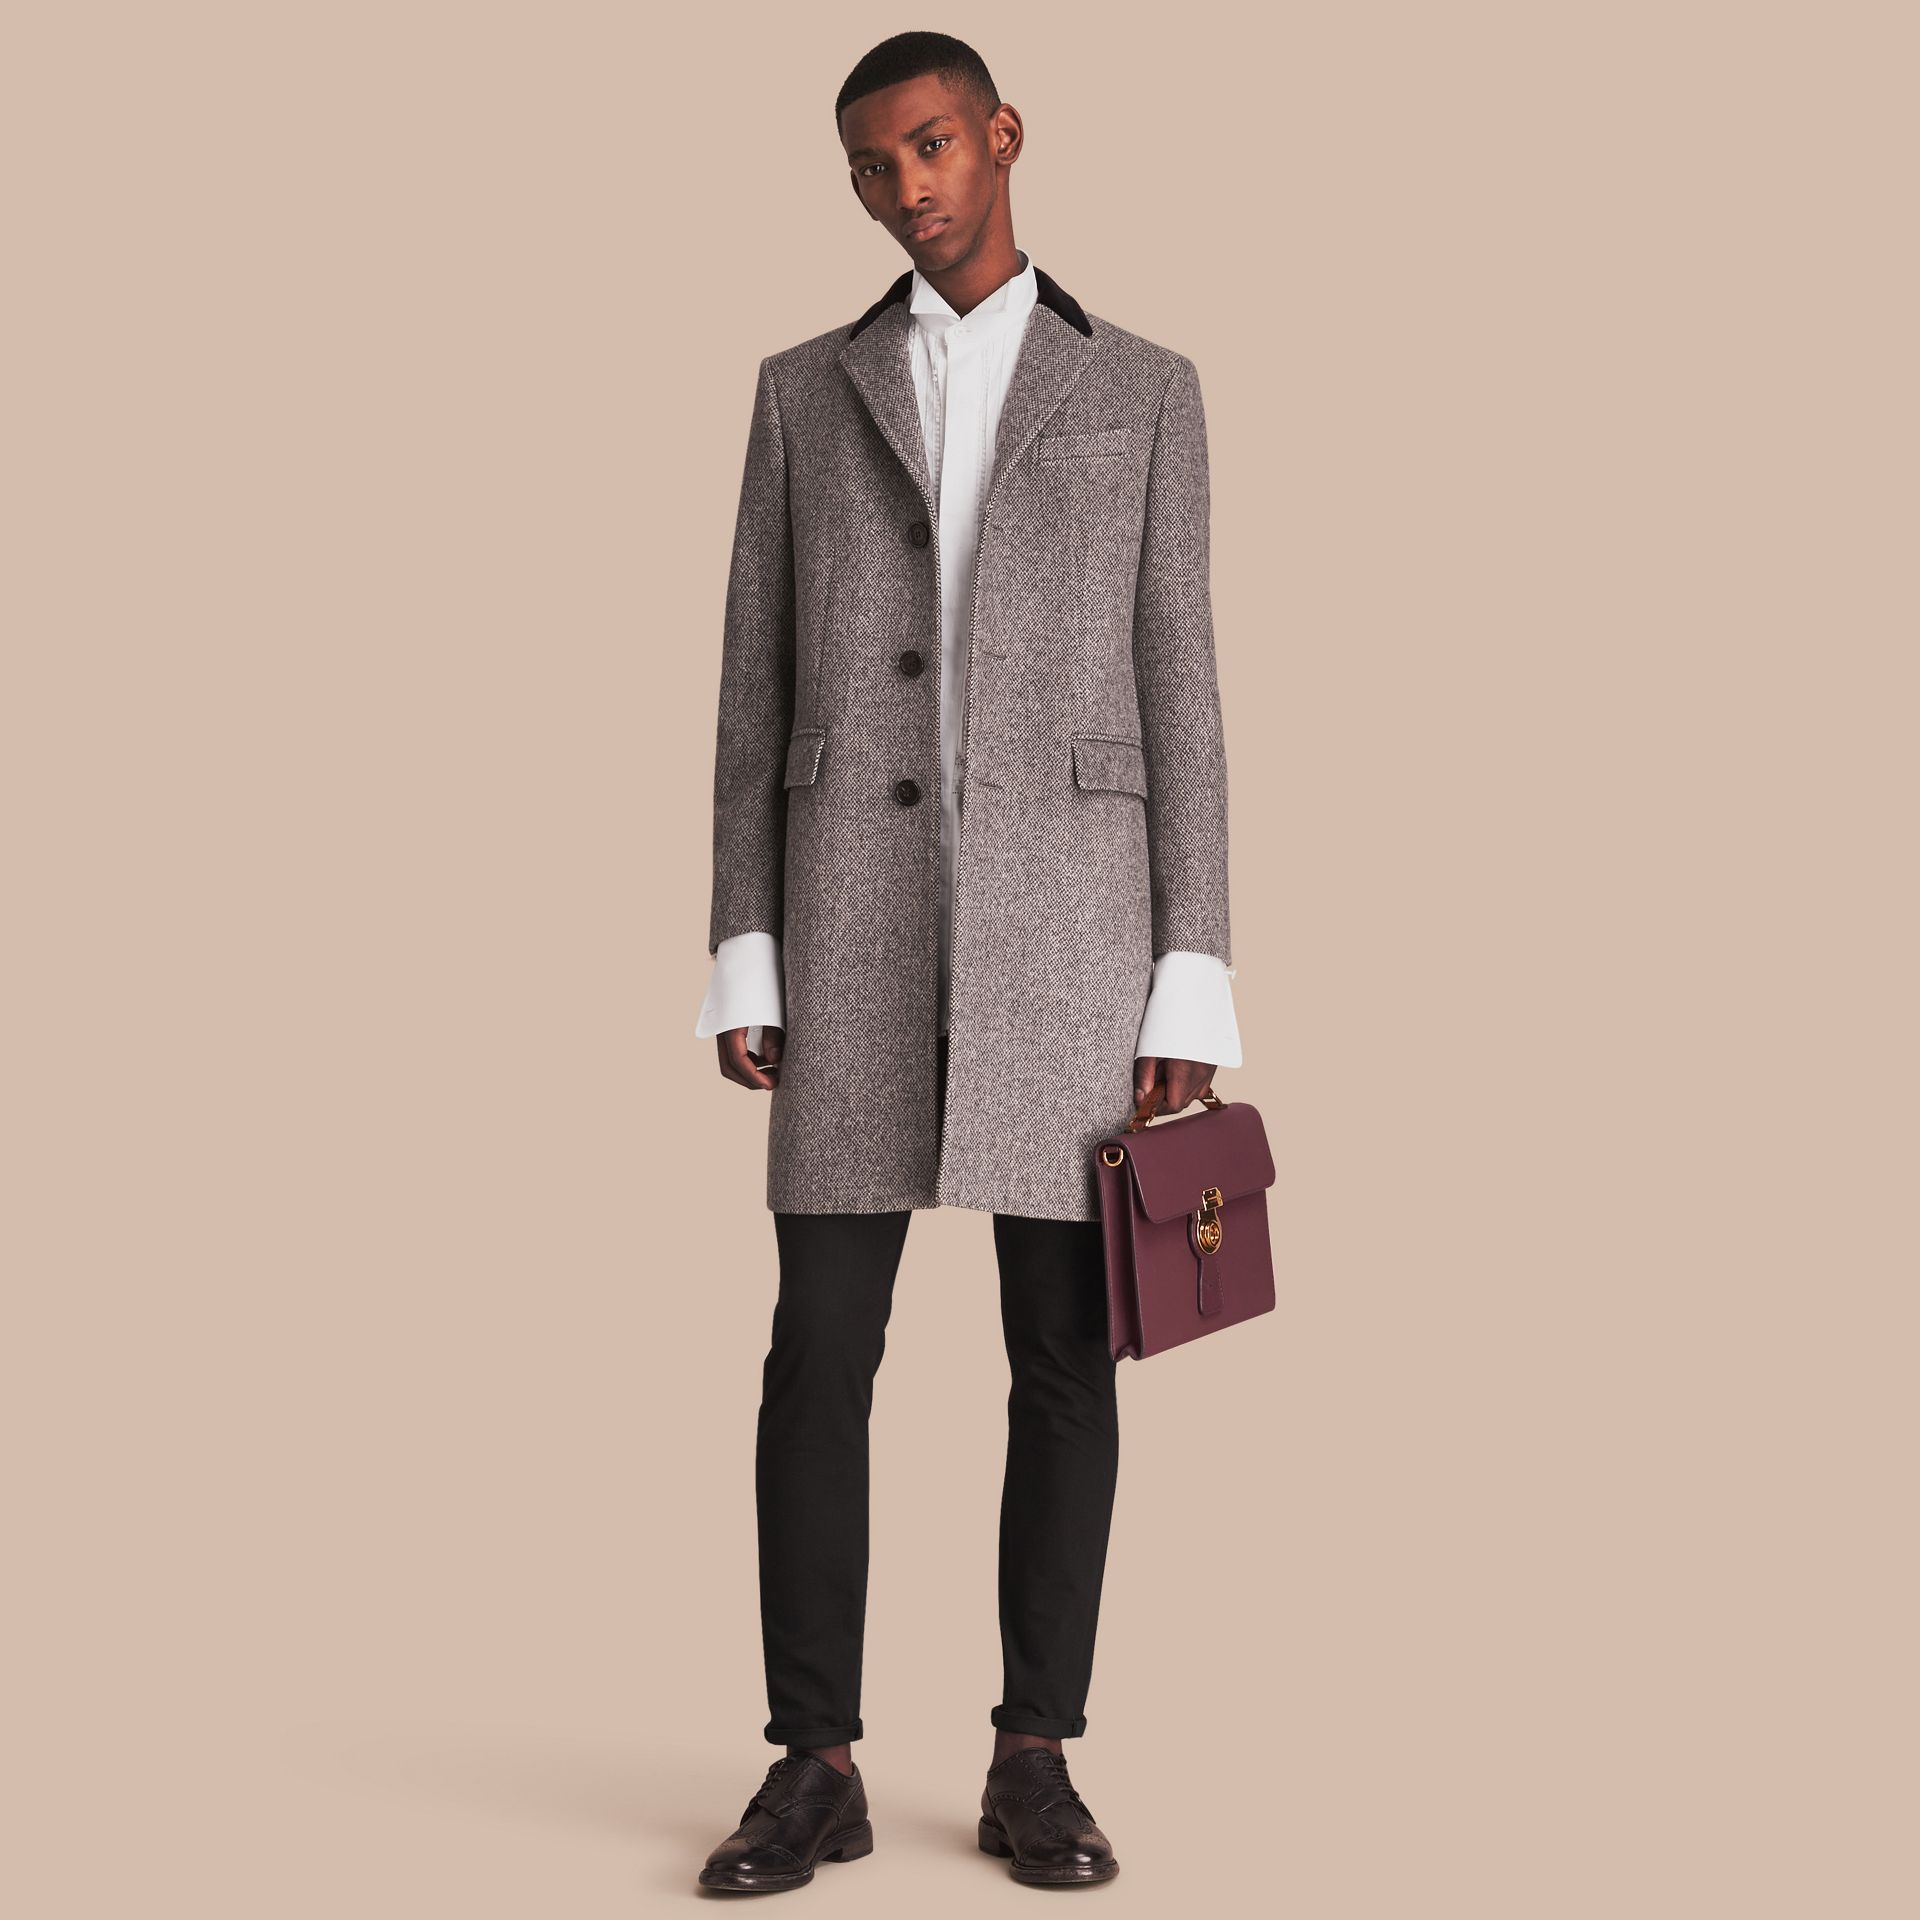 Velvet Collar Wool Tweed Topcoat in Black - Men | Burberry - gallery image 1